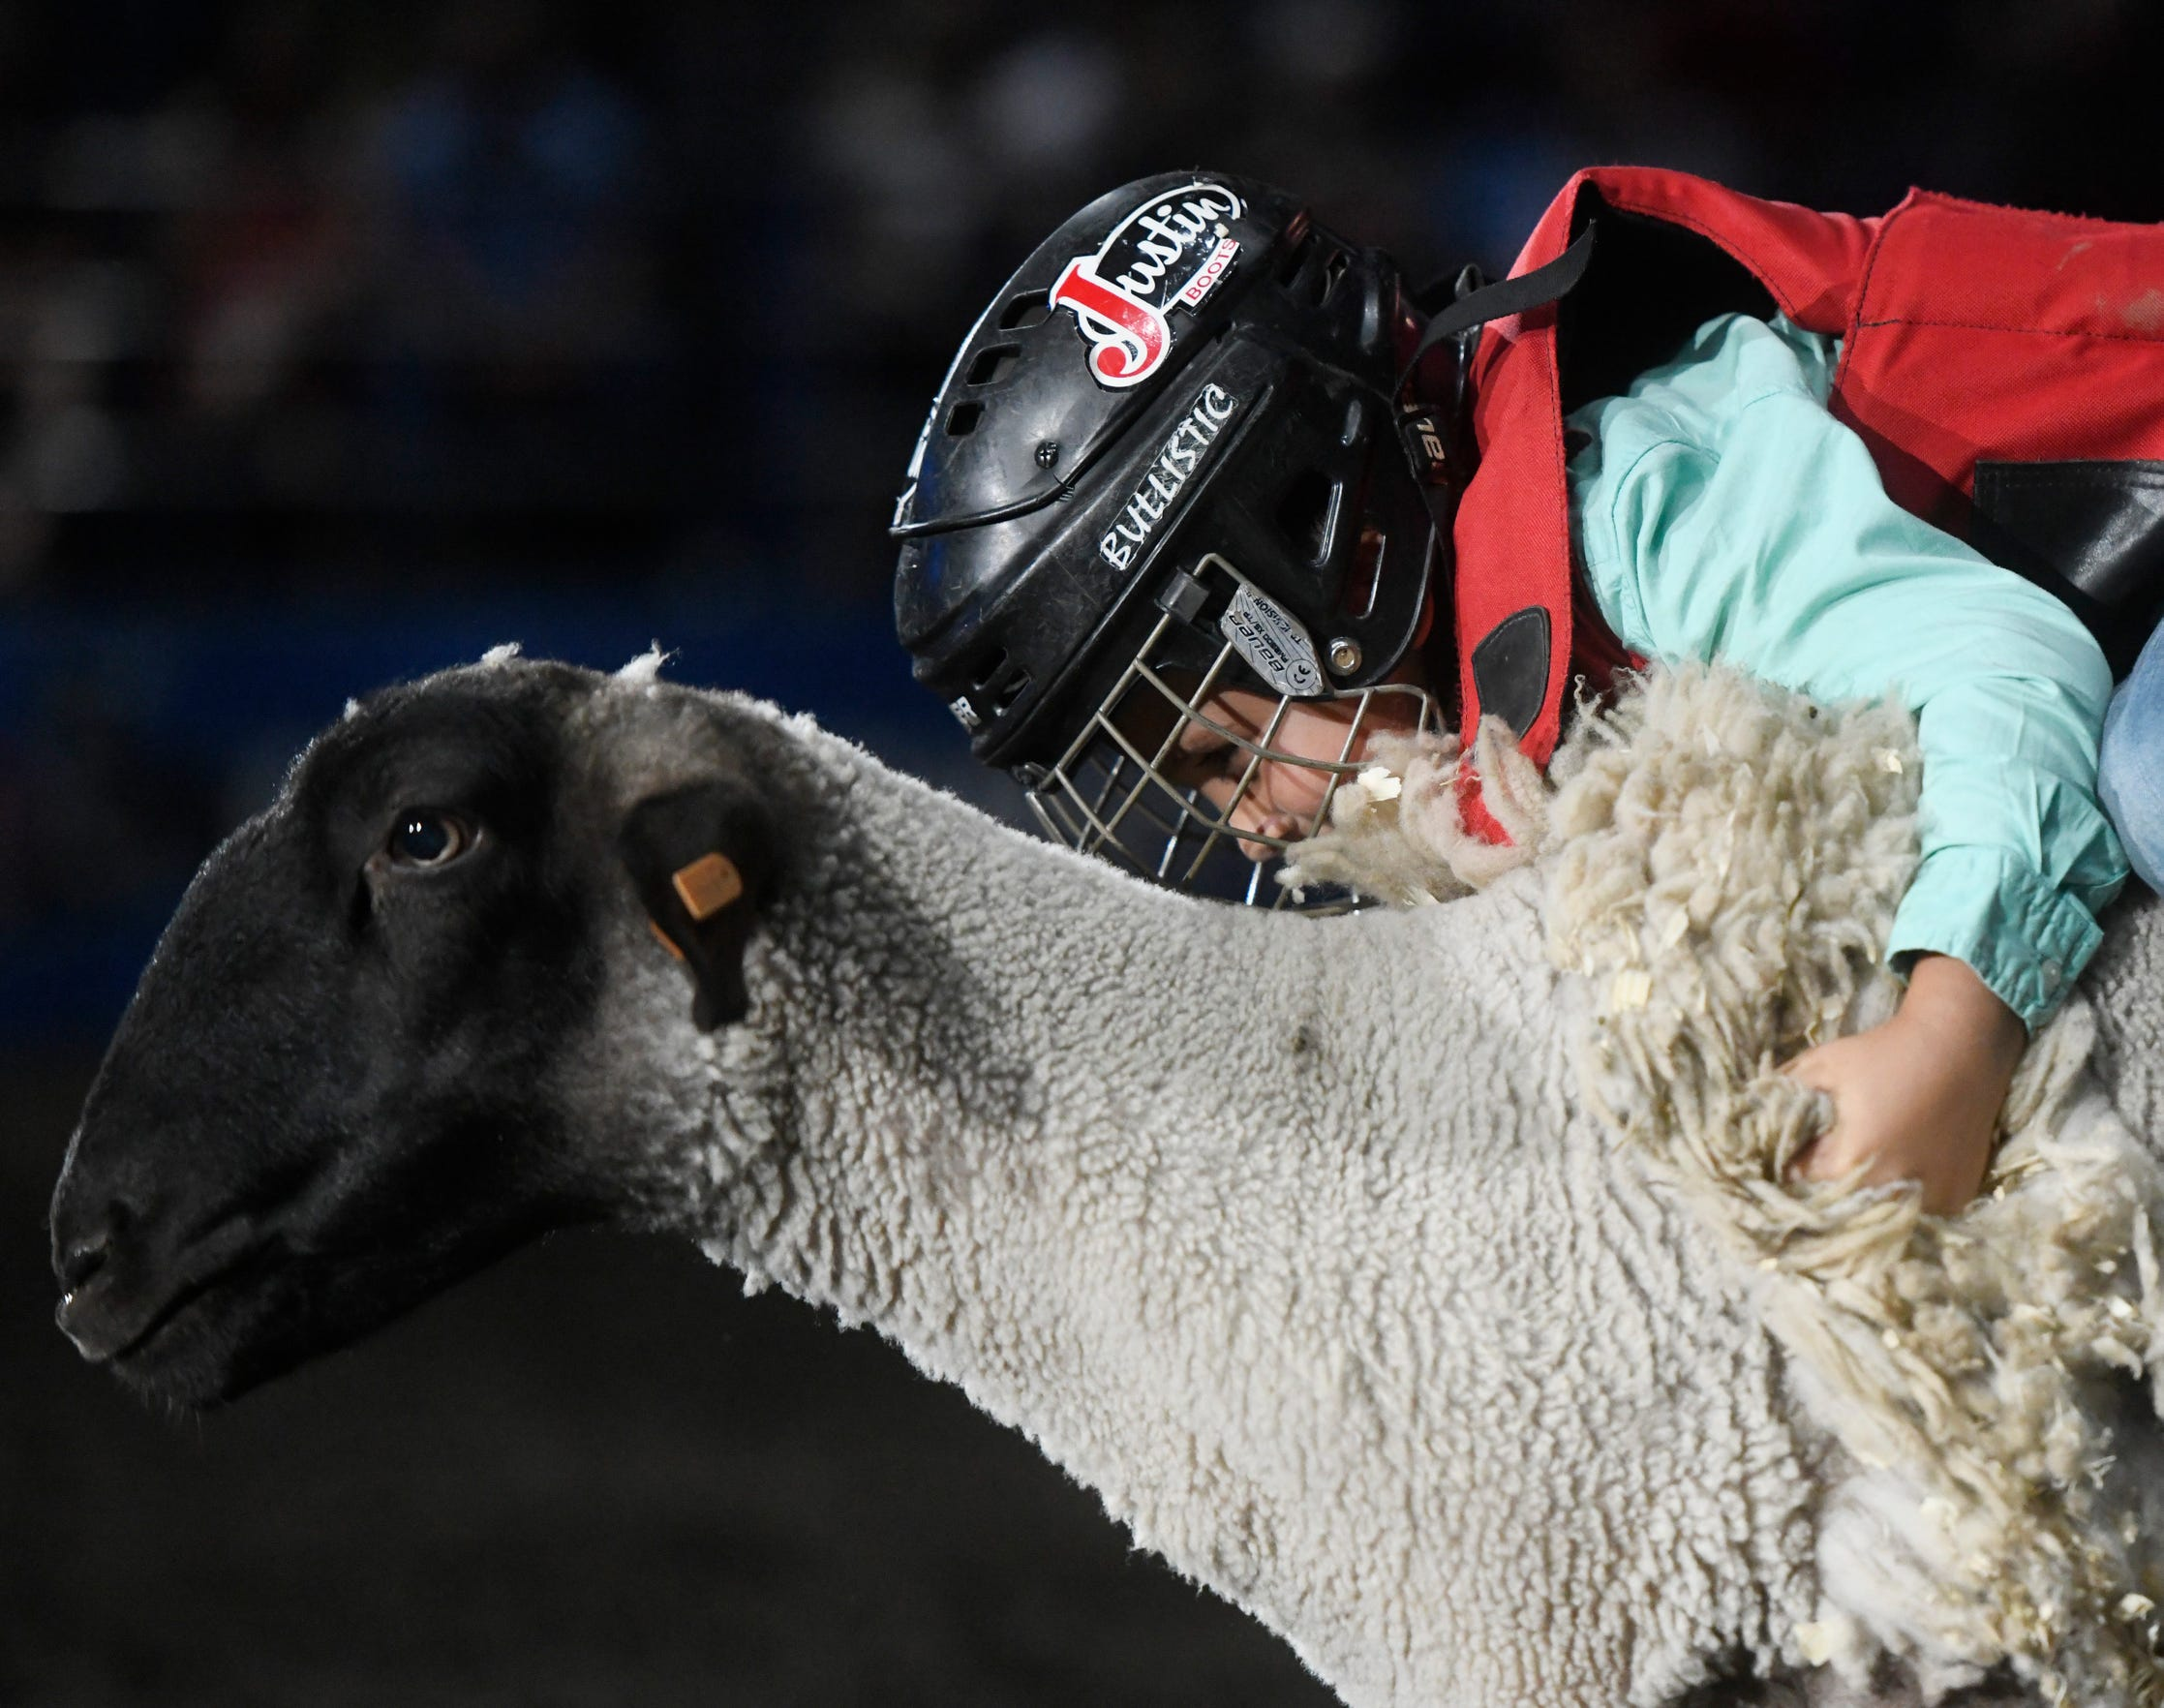 Colton Plimper holds onto a sheep during mutton bustin' at the Corpus Christi rodeo, Friday, April 26, 2019, at the American Bank Center. Plimper placed in first.